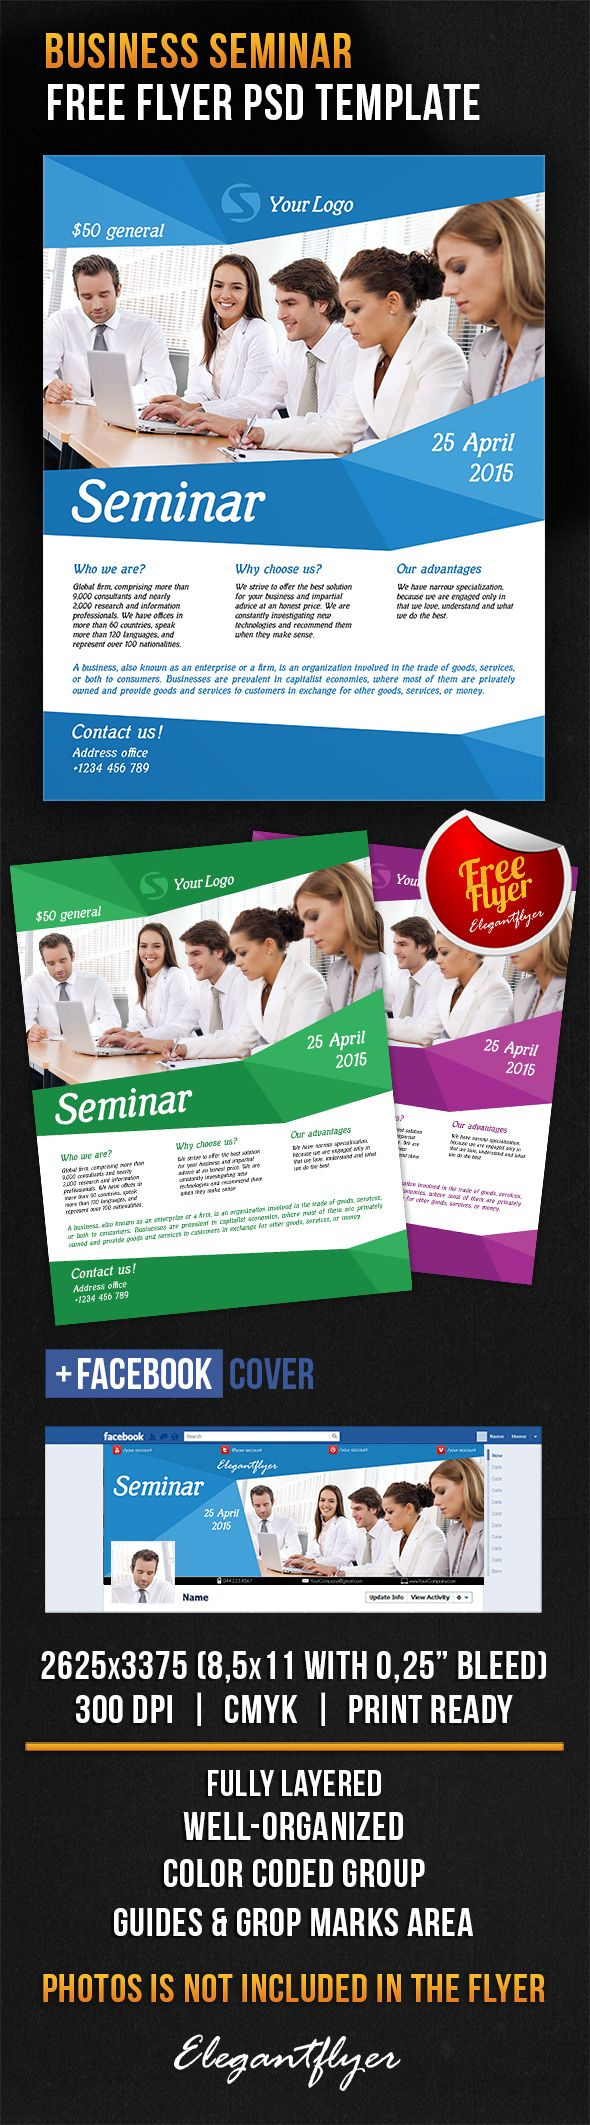 best ideas about flyer design flyer business seminar flyer psd template facebook cover